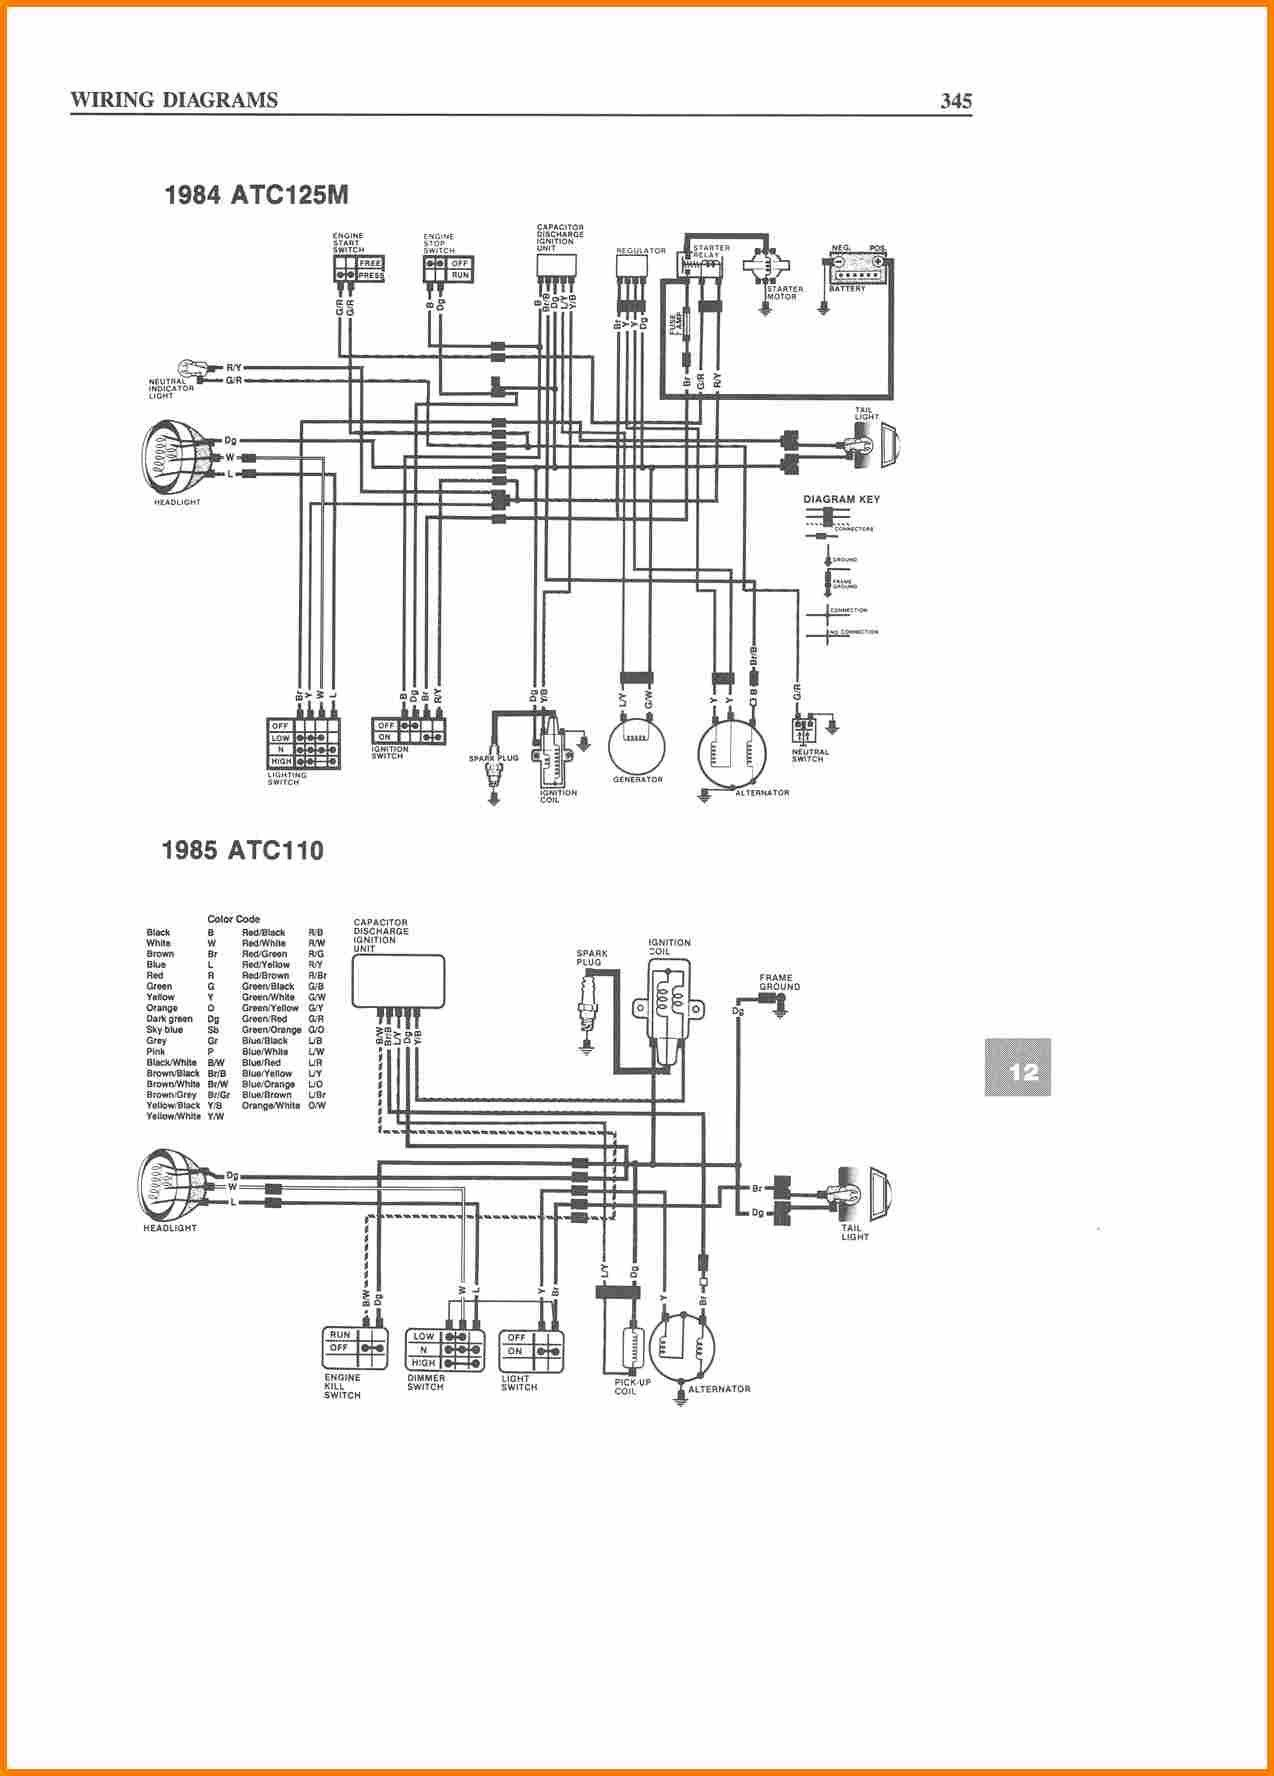 kasea 50 wiring diagram wiring diagram articlekasea wiring diagram wiring diagram show kasea 50 wiring diagram [ 1274 x 1776 Pixel ]